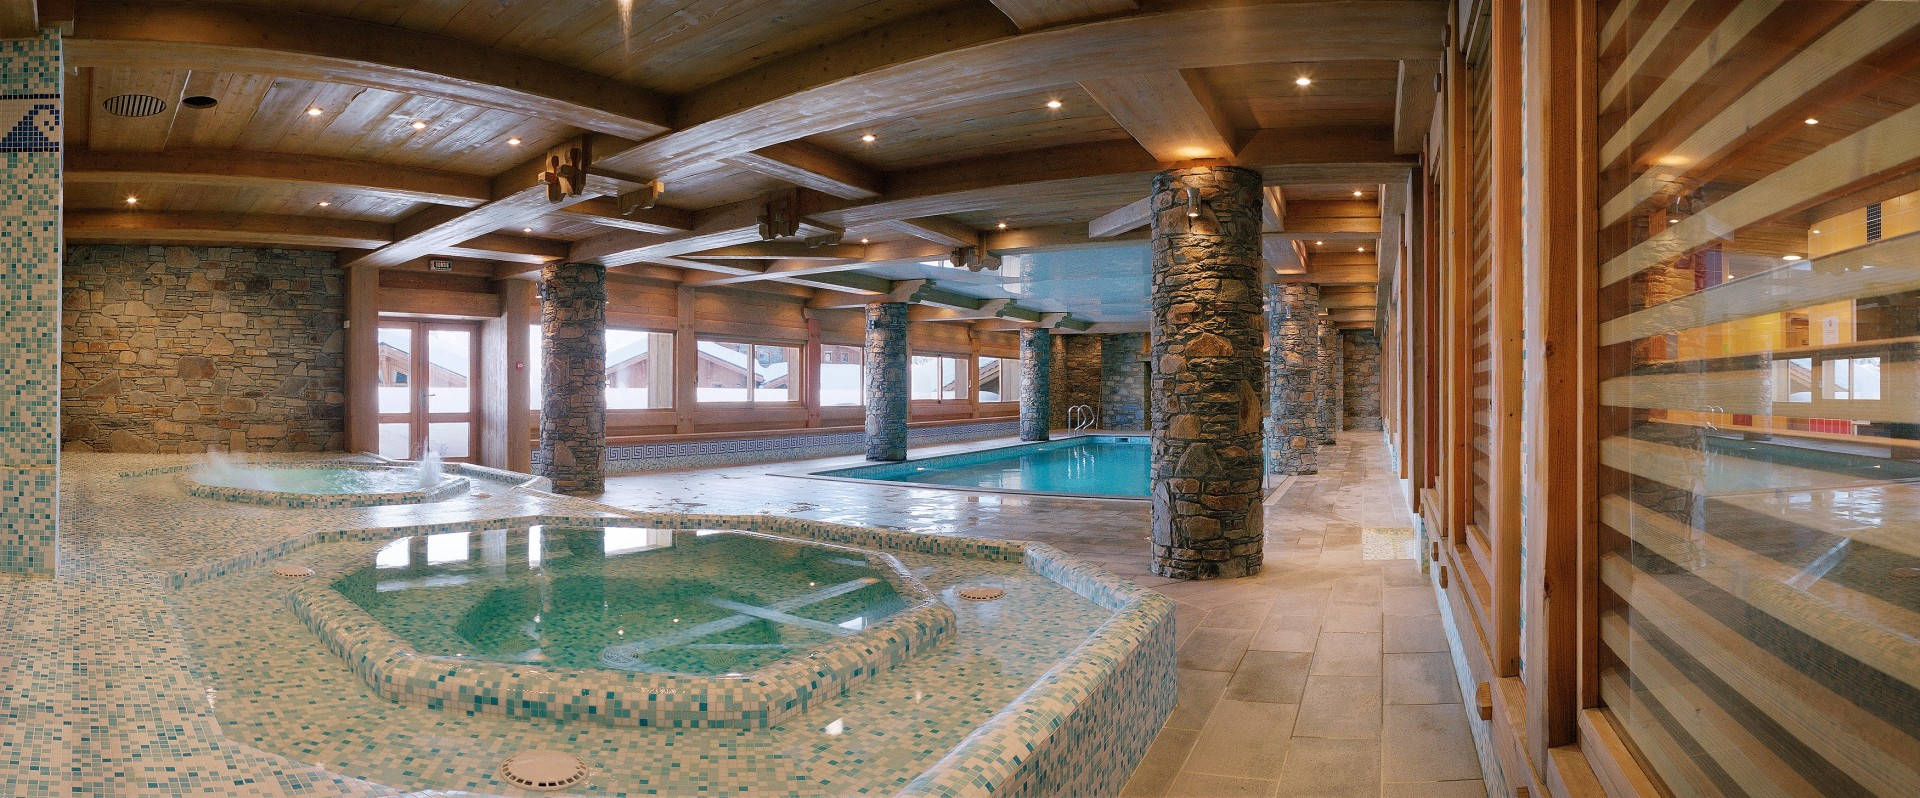 Les Saisies Location Appartement Luxe Leberstein Jacuzzi